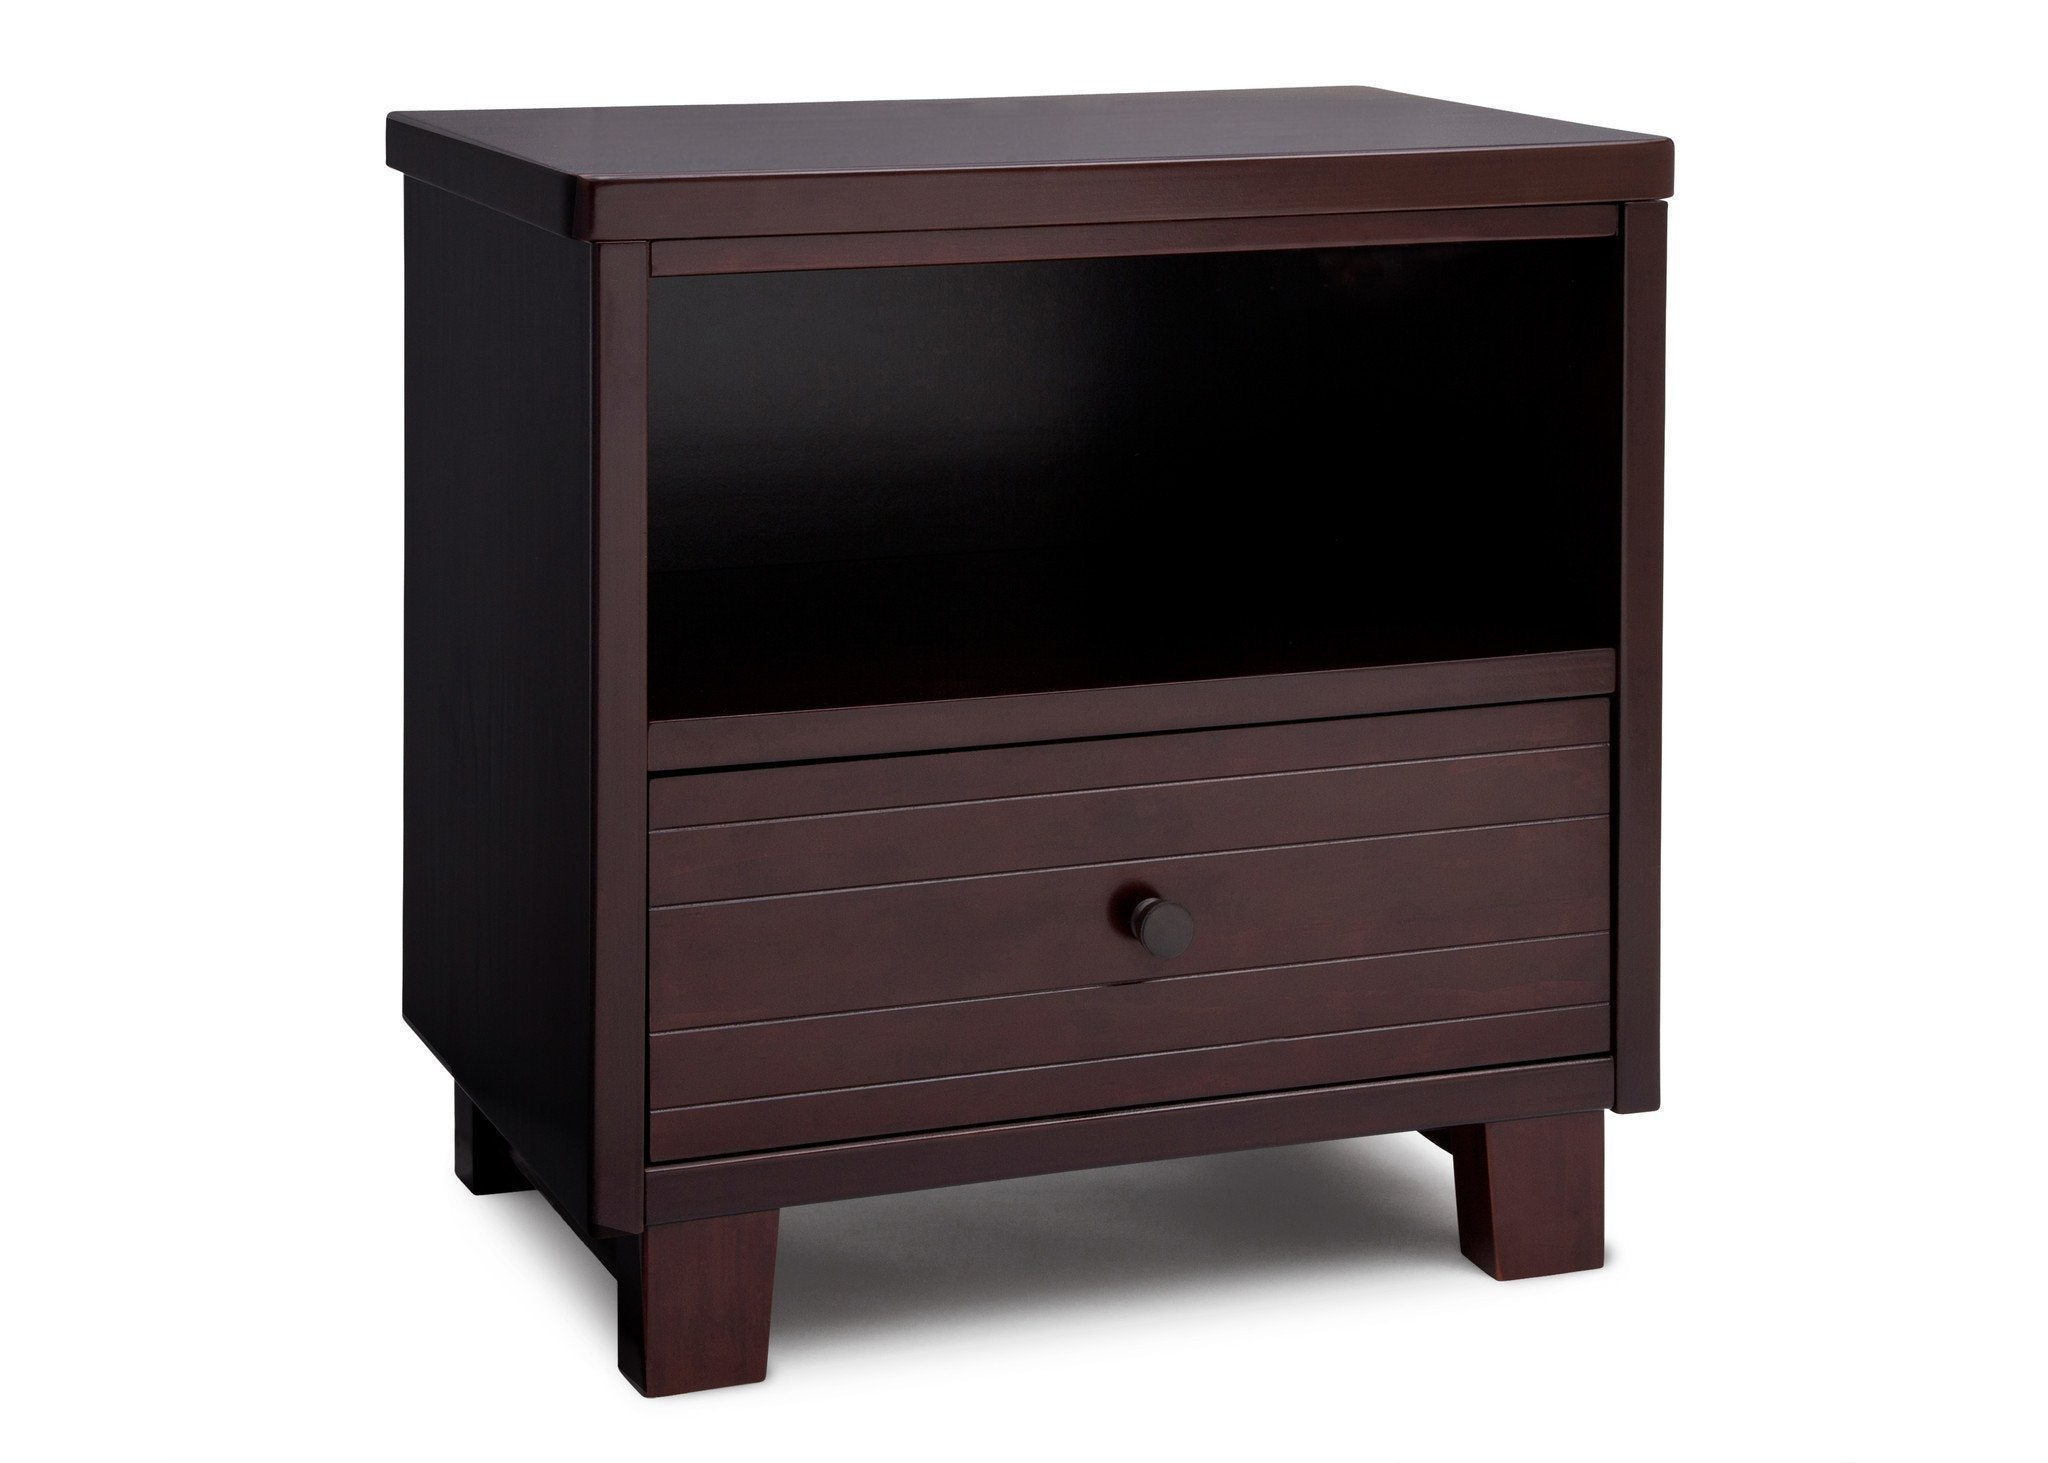 Simmons Kids Black Espresso (907) Rowen Nightstand, Side View b2b